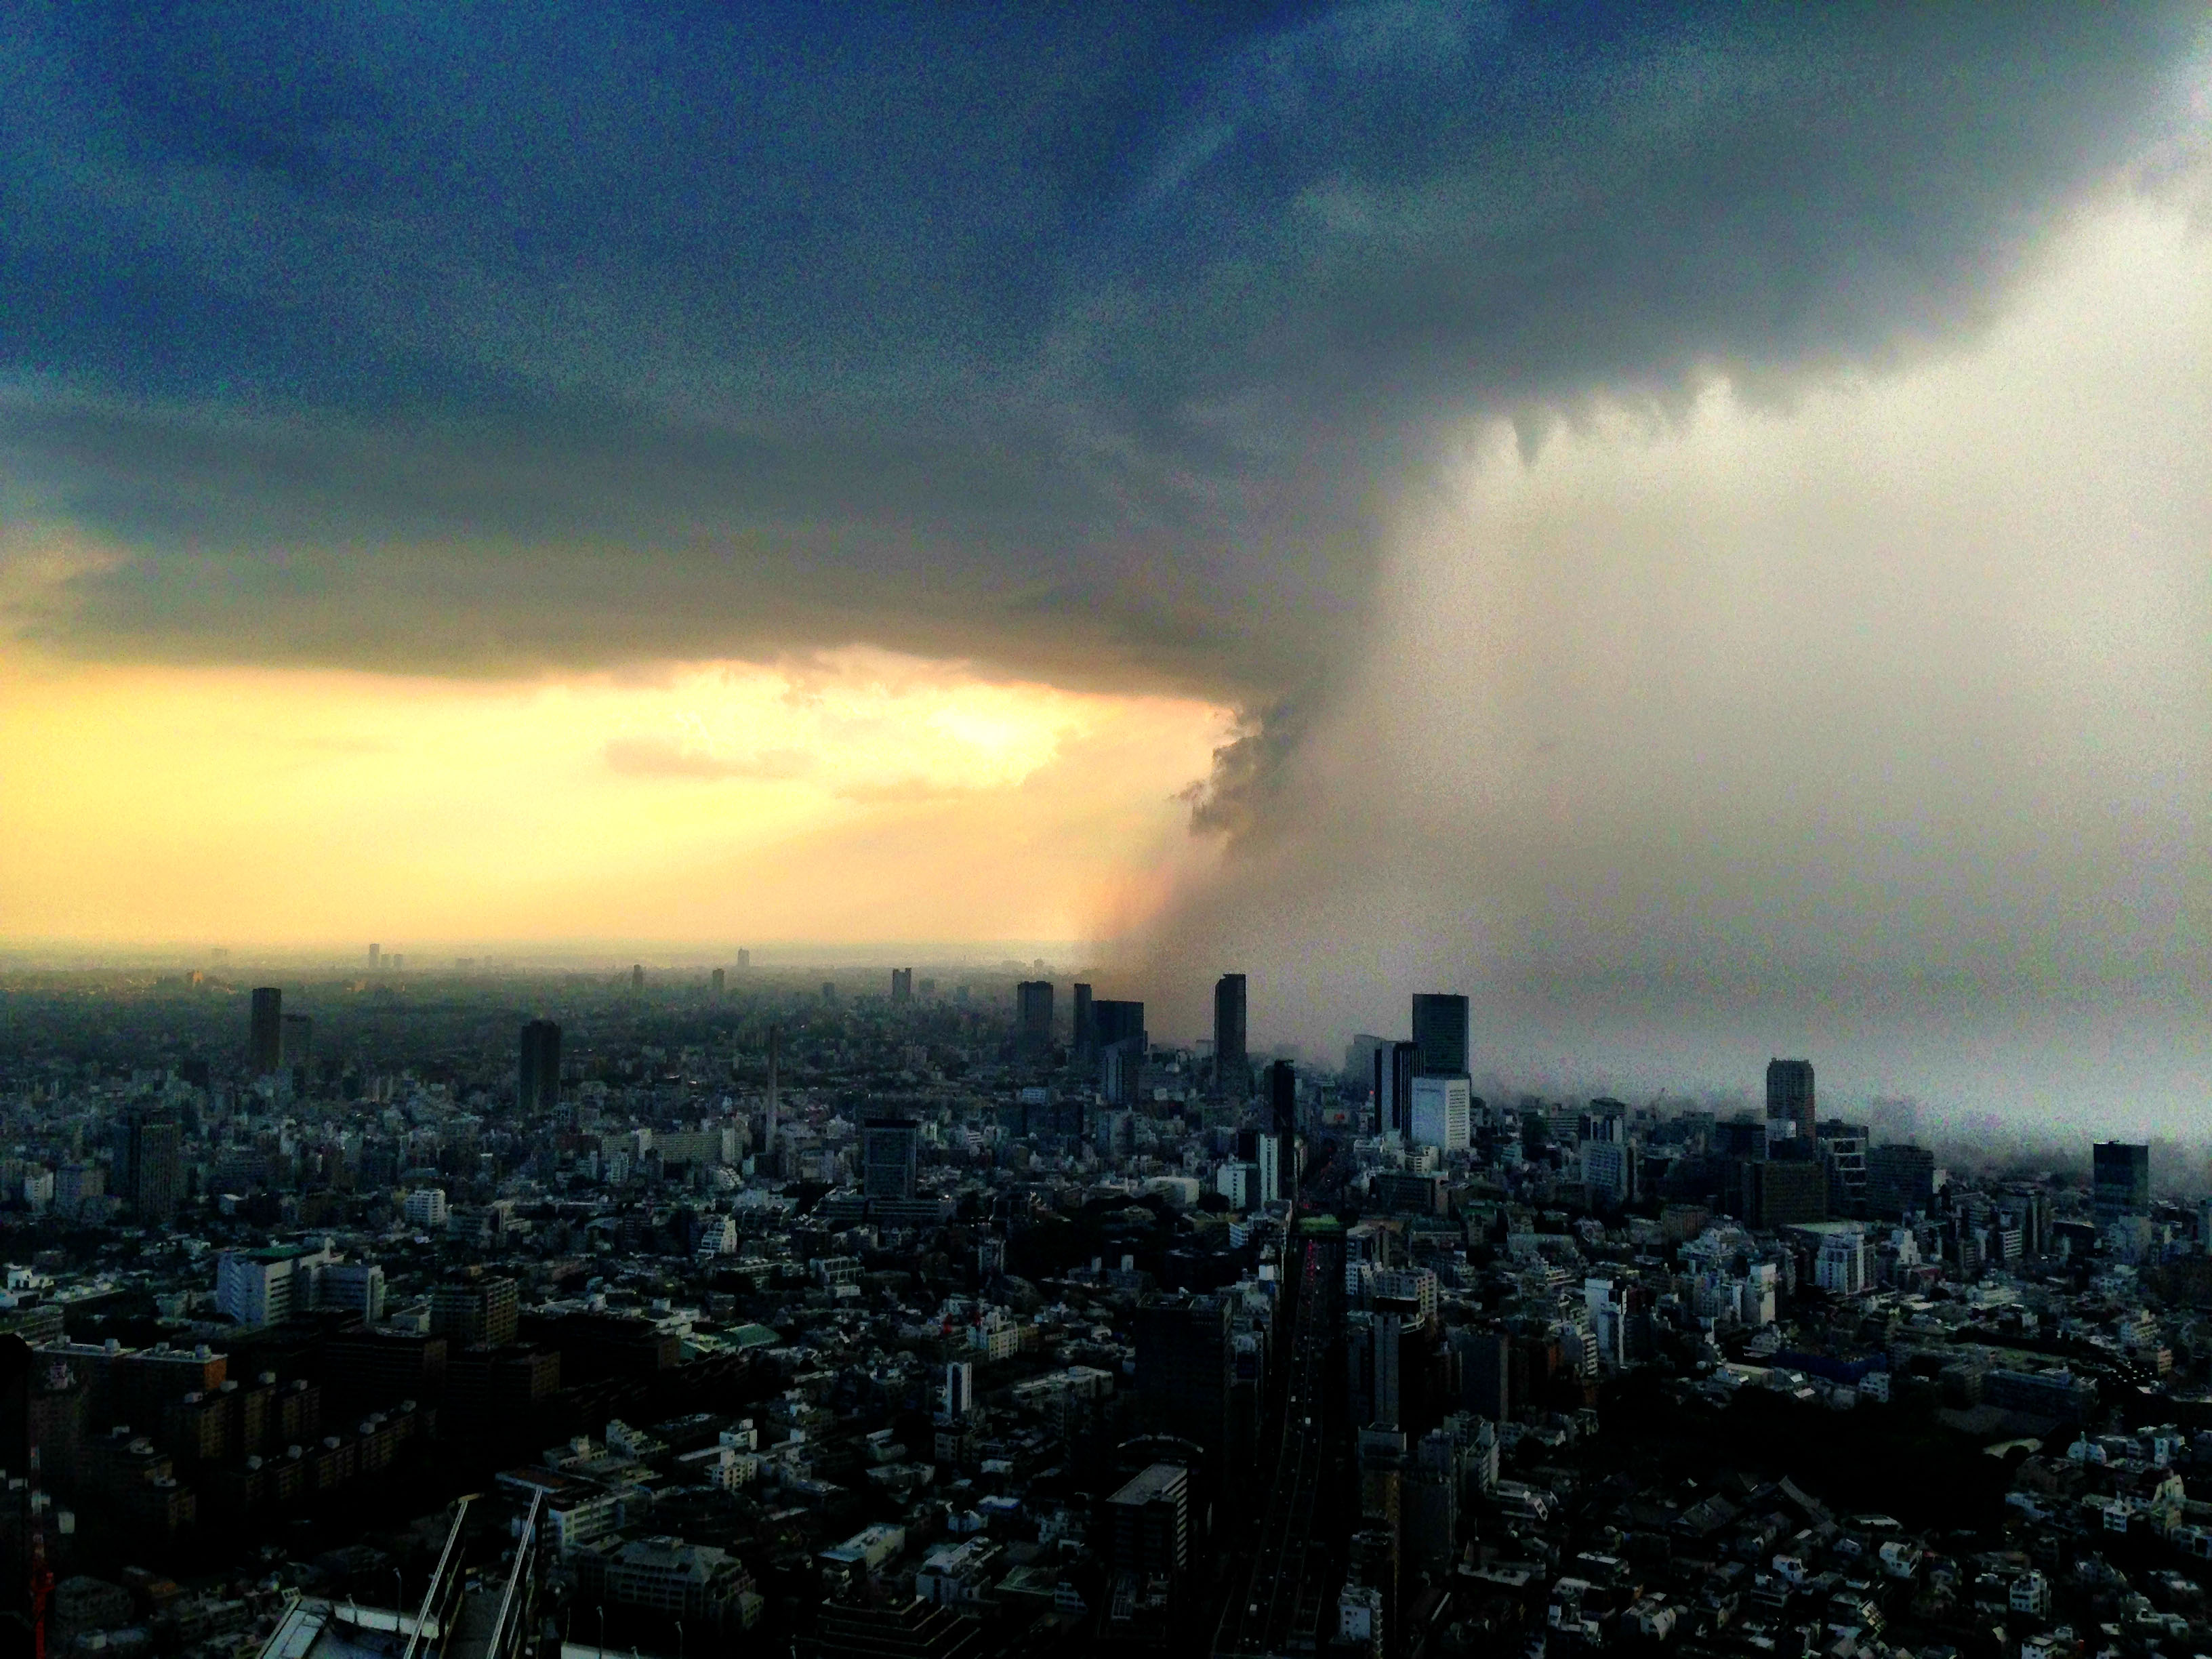 Run for cover: As summer kicked in last week, so did Tokyo's heat-island effect, which caused this picturesque 'guerrilla storm' as seen from Roppongi Hills. | JAKE ADELSTEIN